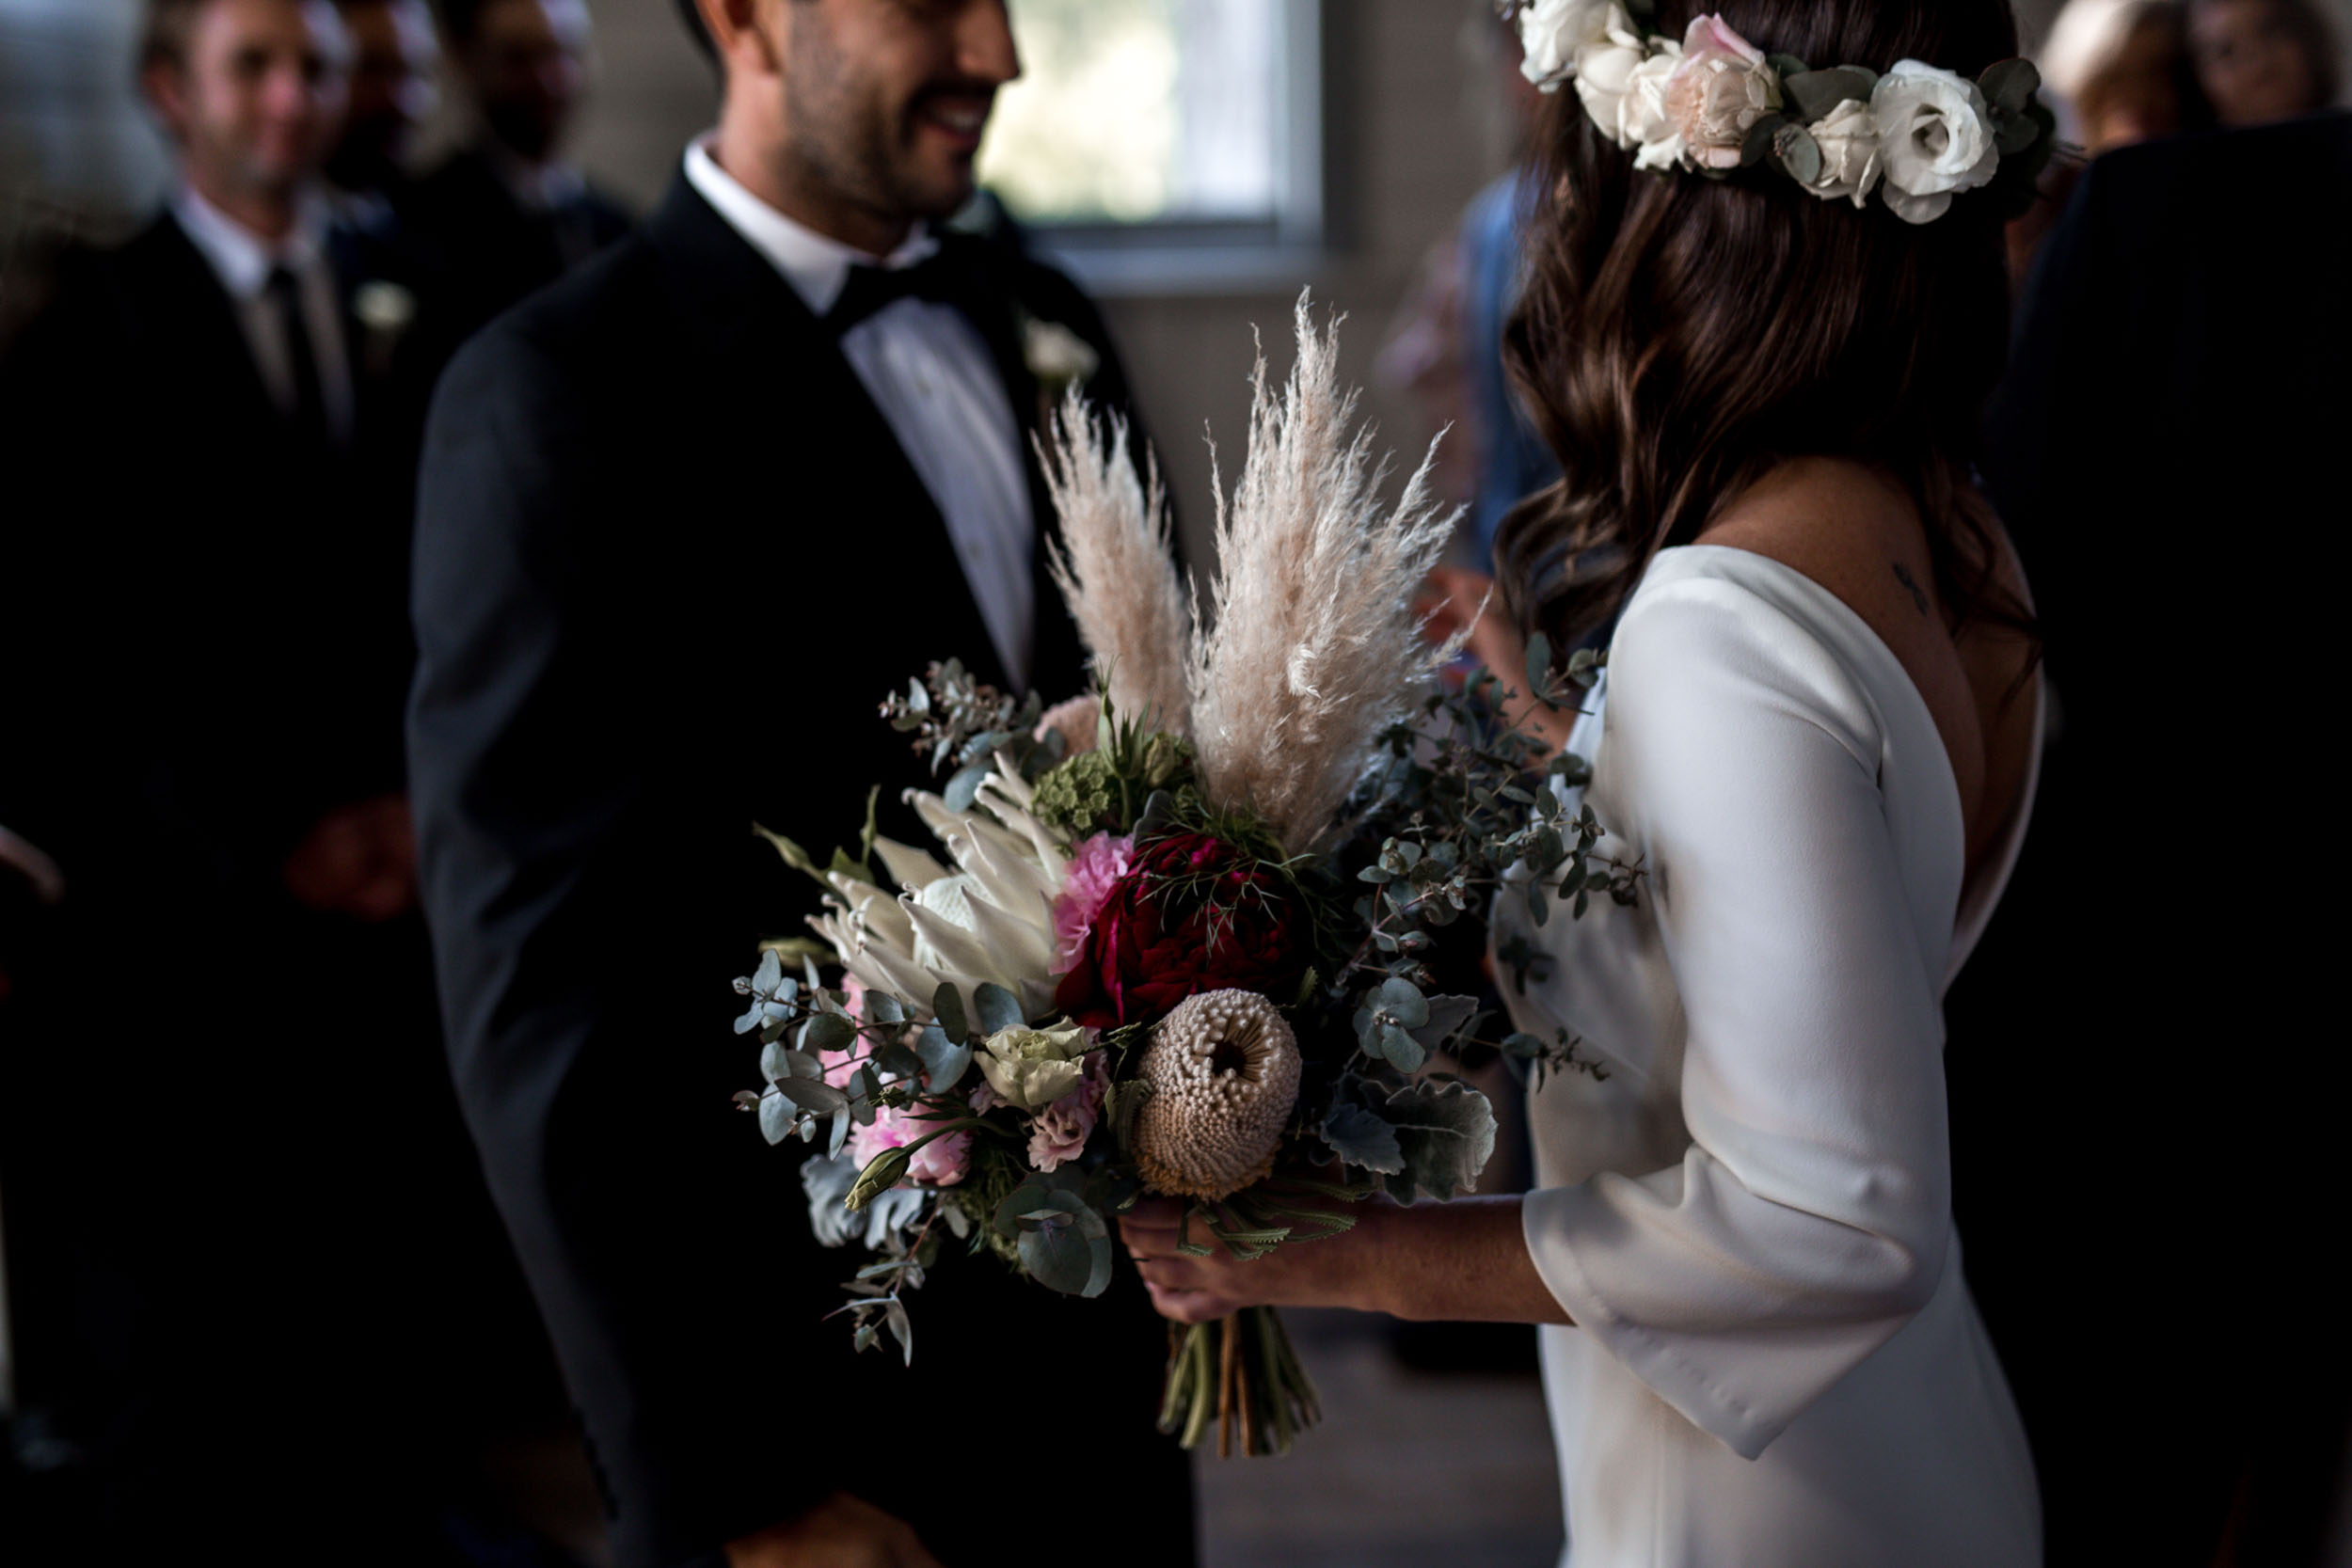 THE FLOWERS - FLORIST - Flower Muse Styling Co.